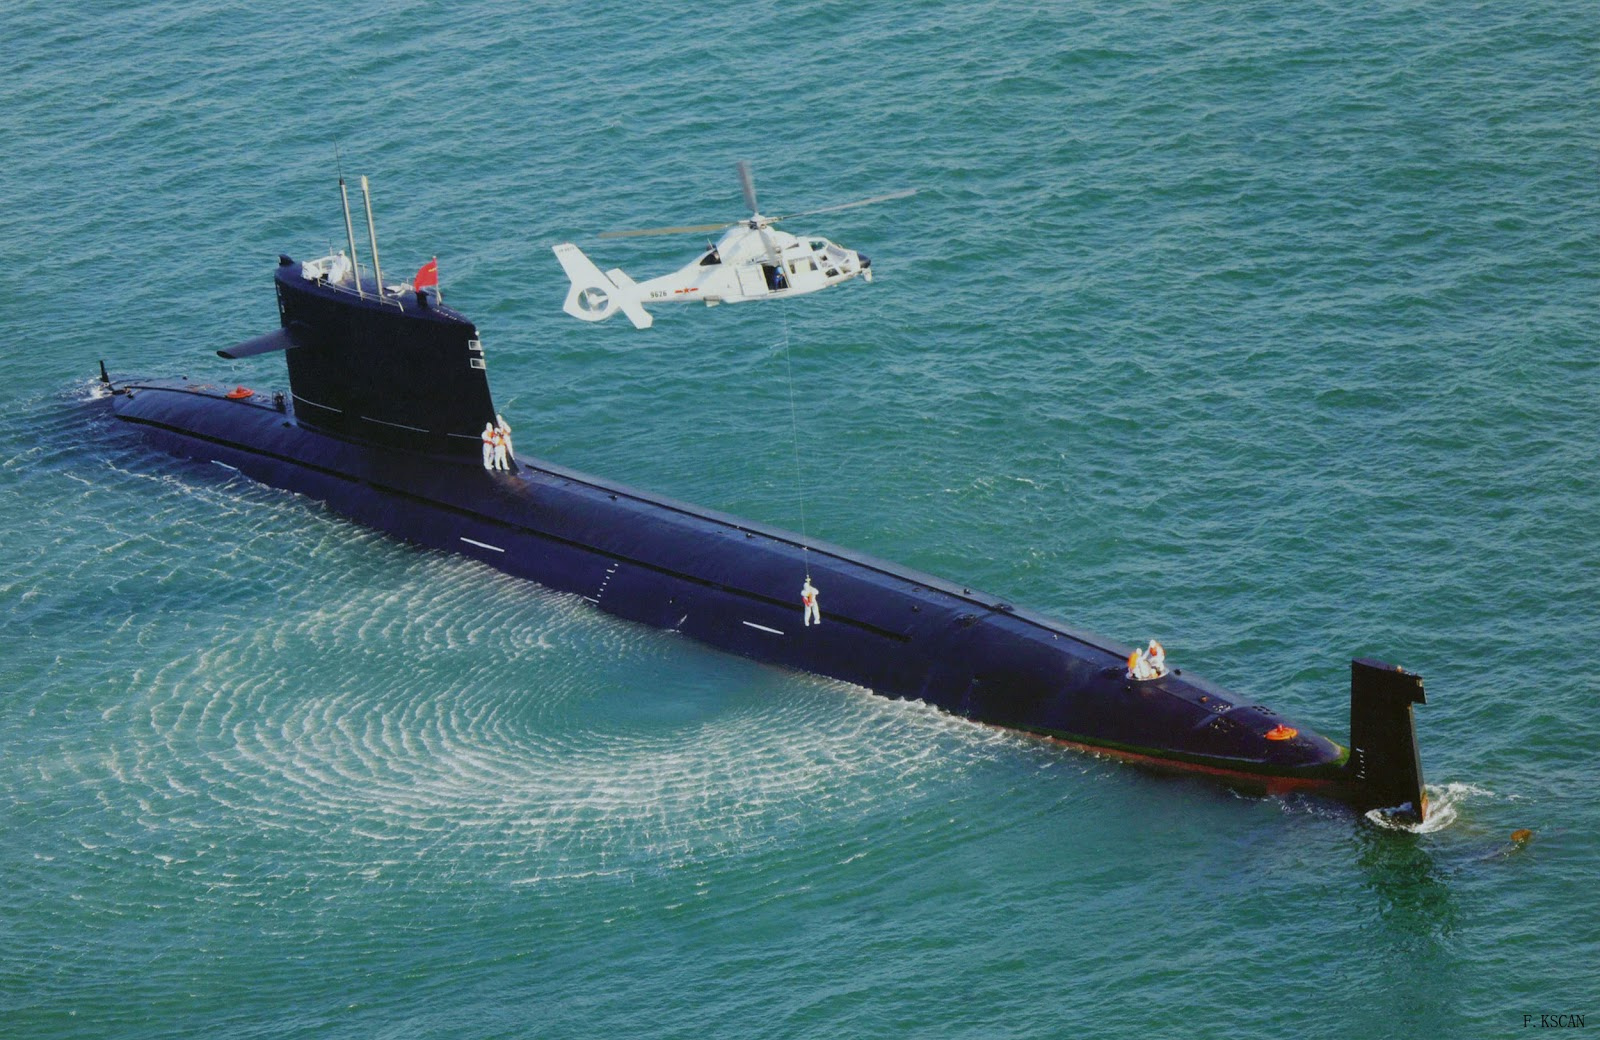 the united states attack and ballistic nuclear submarines An essay or paper on ballistic nuclear submarines on united states attack united states attack and ballistic nuclear submarines the united states navy has developed, over the years into one of the world&quots most powerful forces.